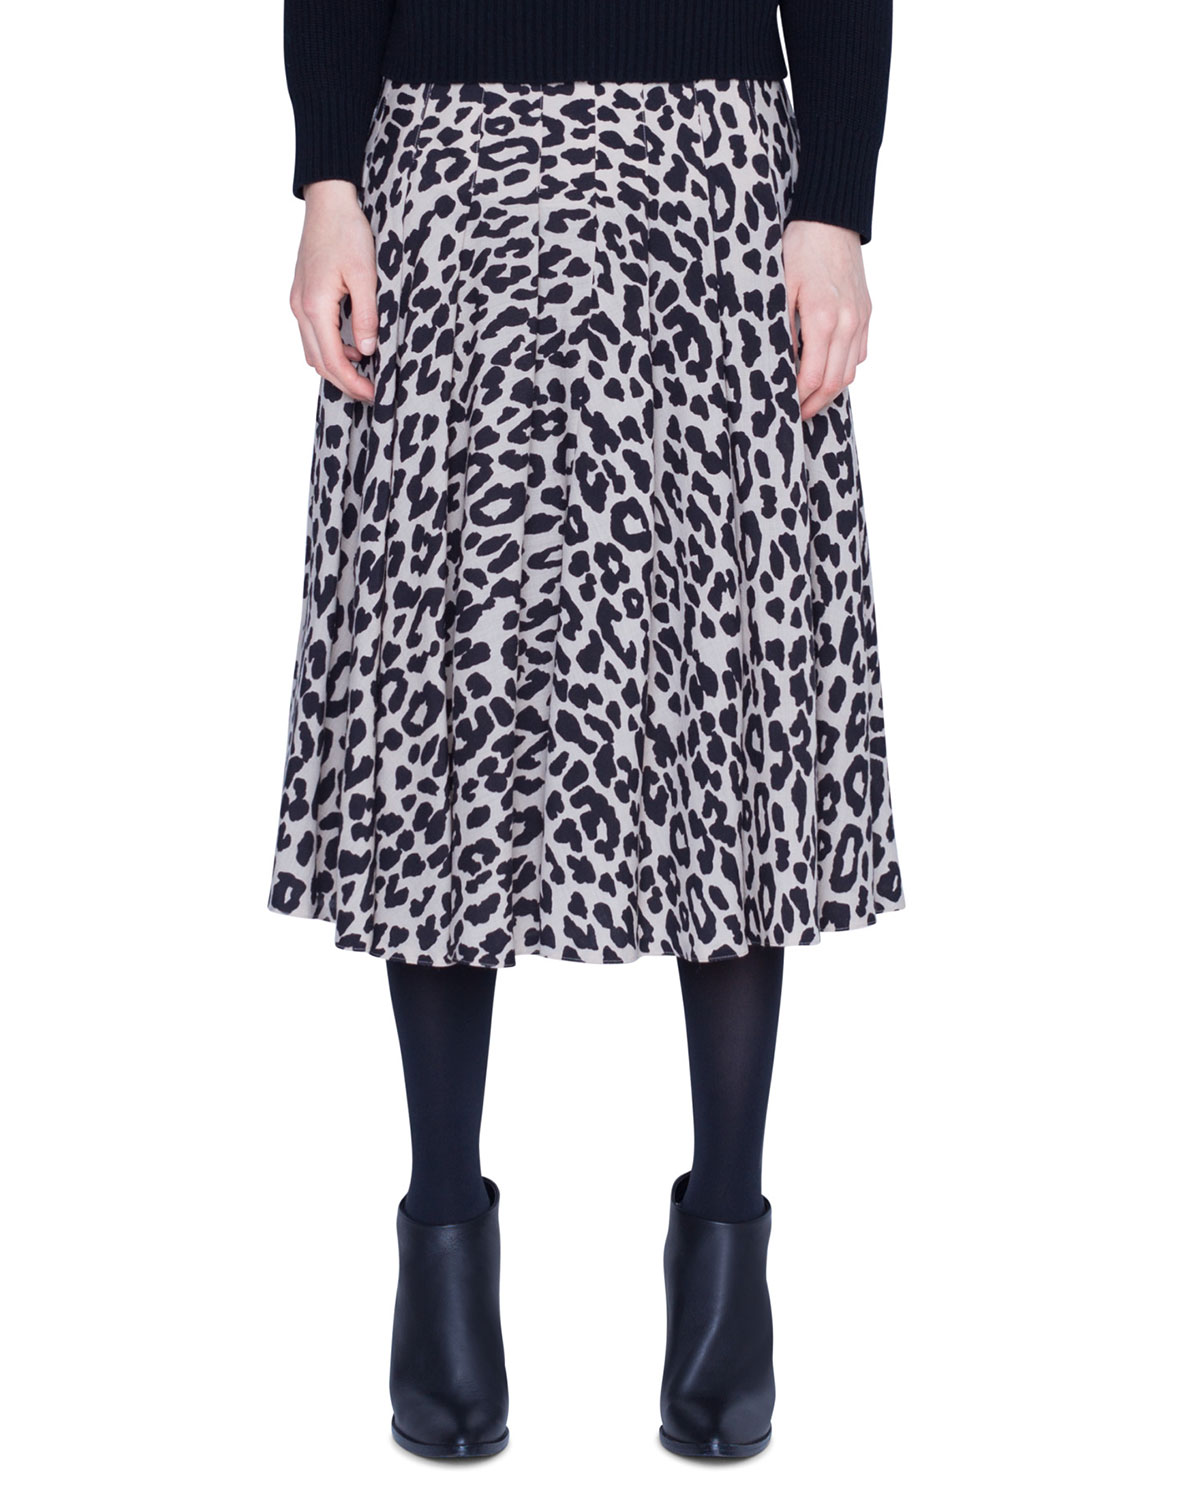 Akris Punto Tops LEOPARD PRINT WOOL KNEE-LENGTH